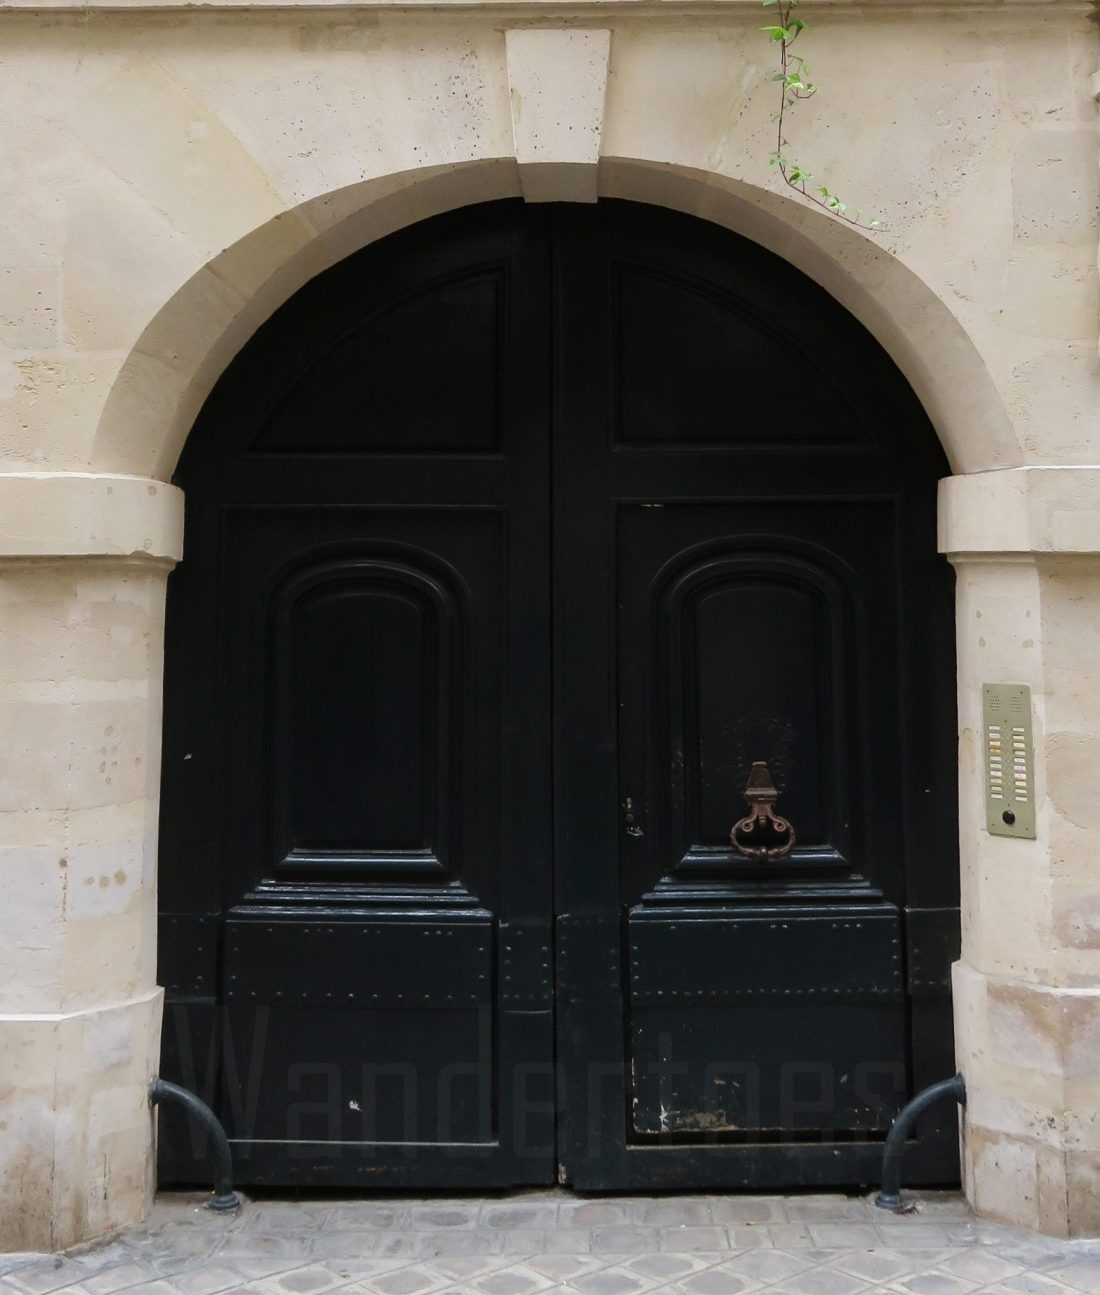 ParisBlackDoor Watermark - Copy